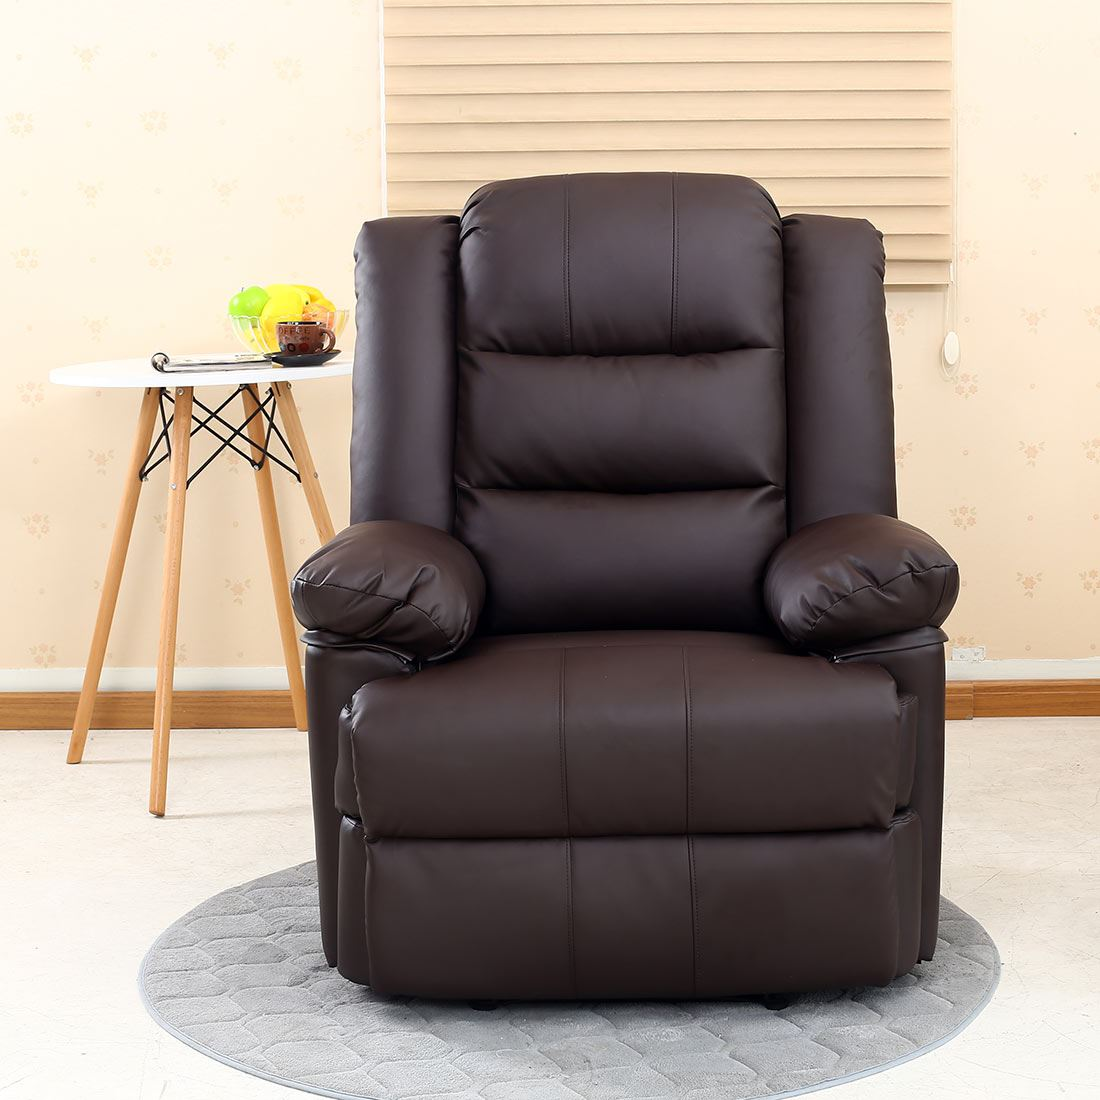 leather lounge armchair loxley leather recliner armchair sofa home lounge chair 16659 | 98a4b025 8ffc 42a6 b4d5 50fa15ee4a71